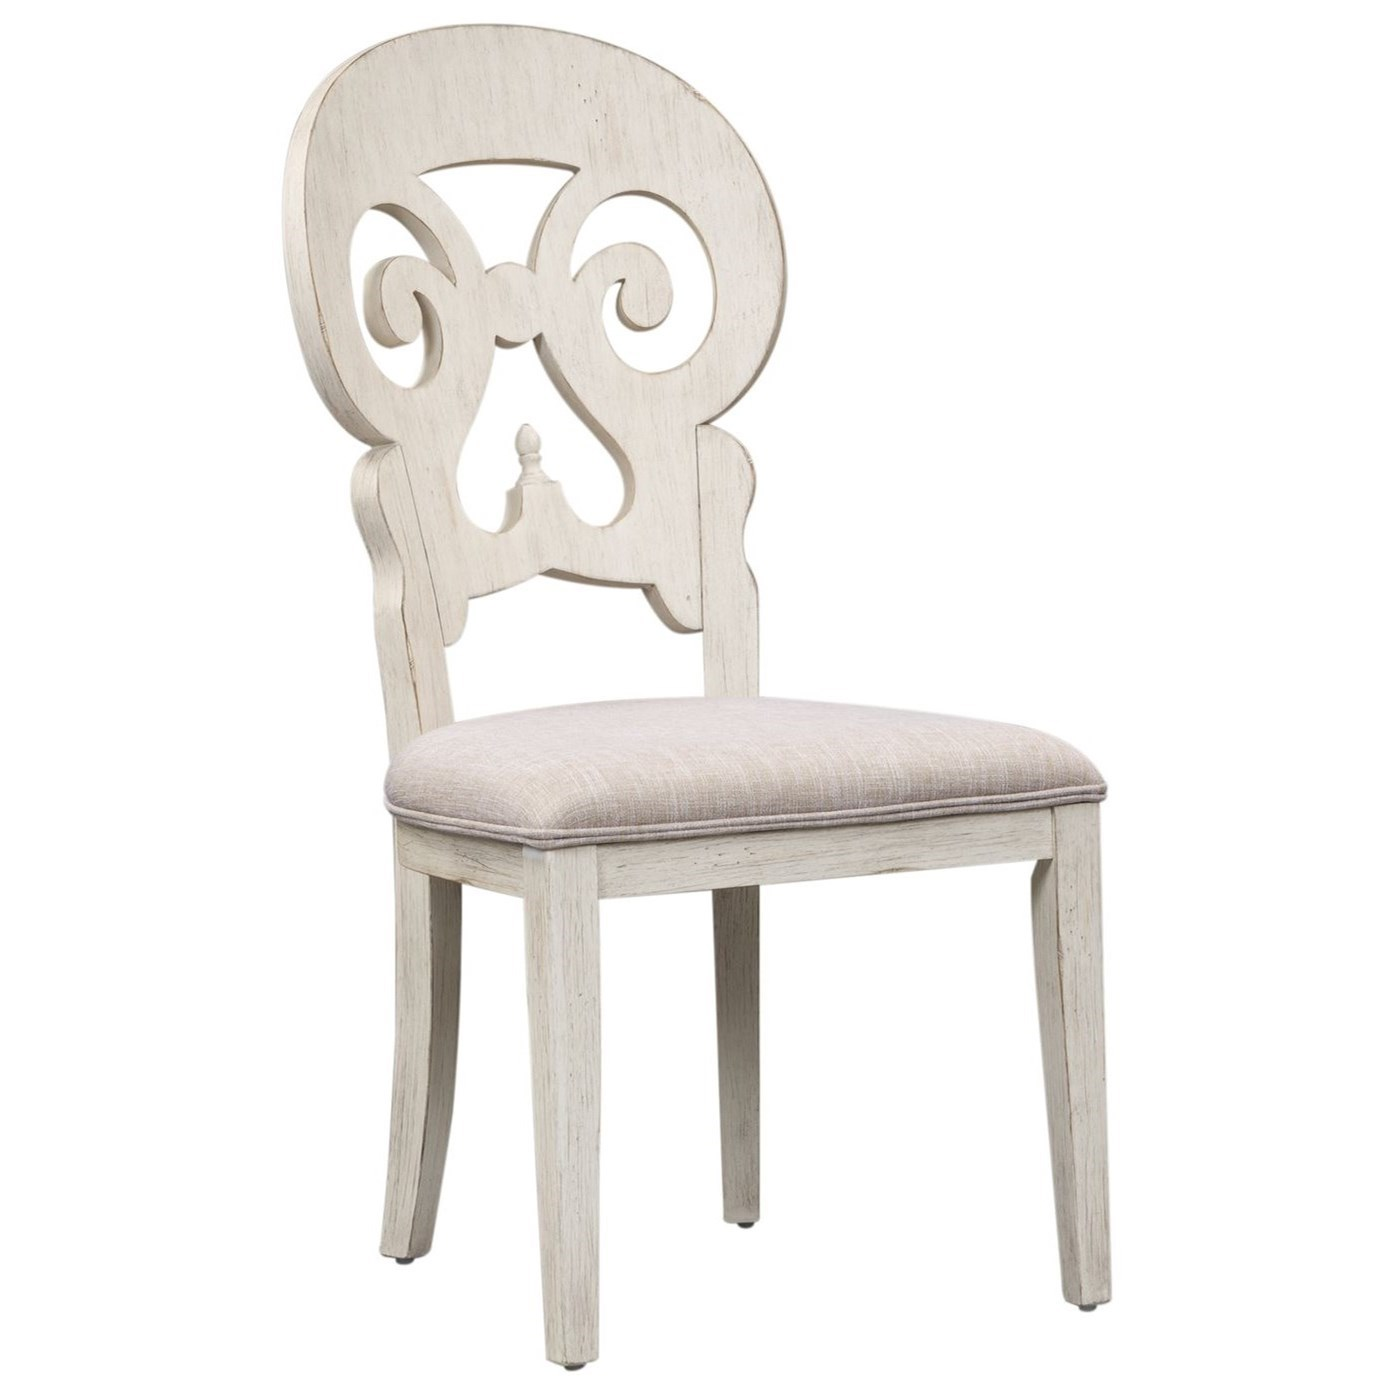 Farmhouse Reimagined Splat Back Side Chair by Liberty Furniture at Northeast Factory Direct